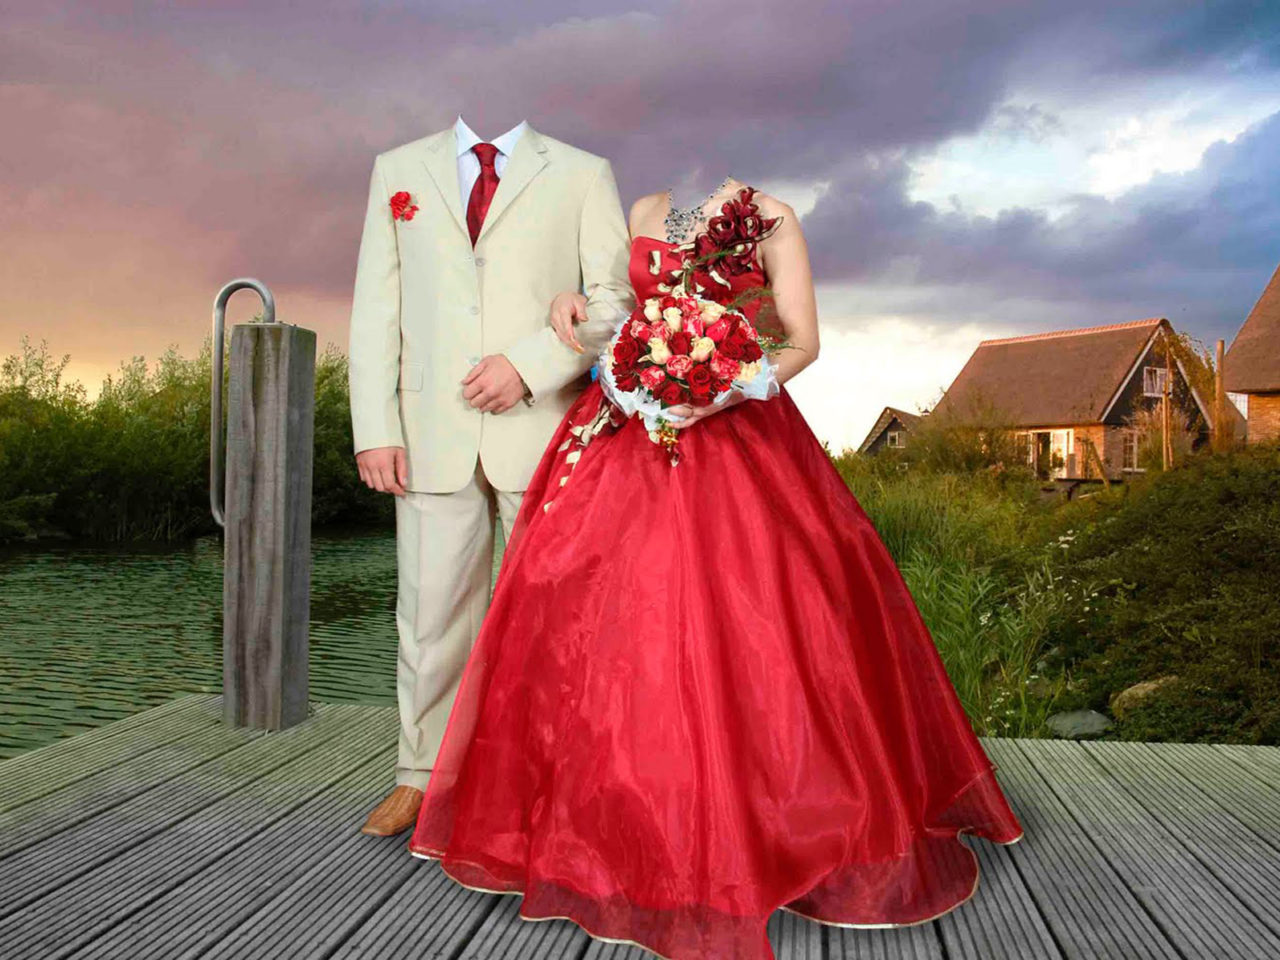 New 3d Hd Wallpaper Free Download Template For The Bride And Groom Photo Psd Wallpapers13 Com